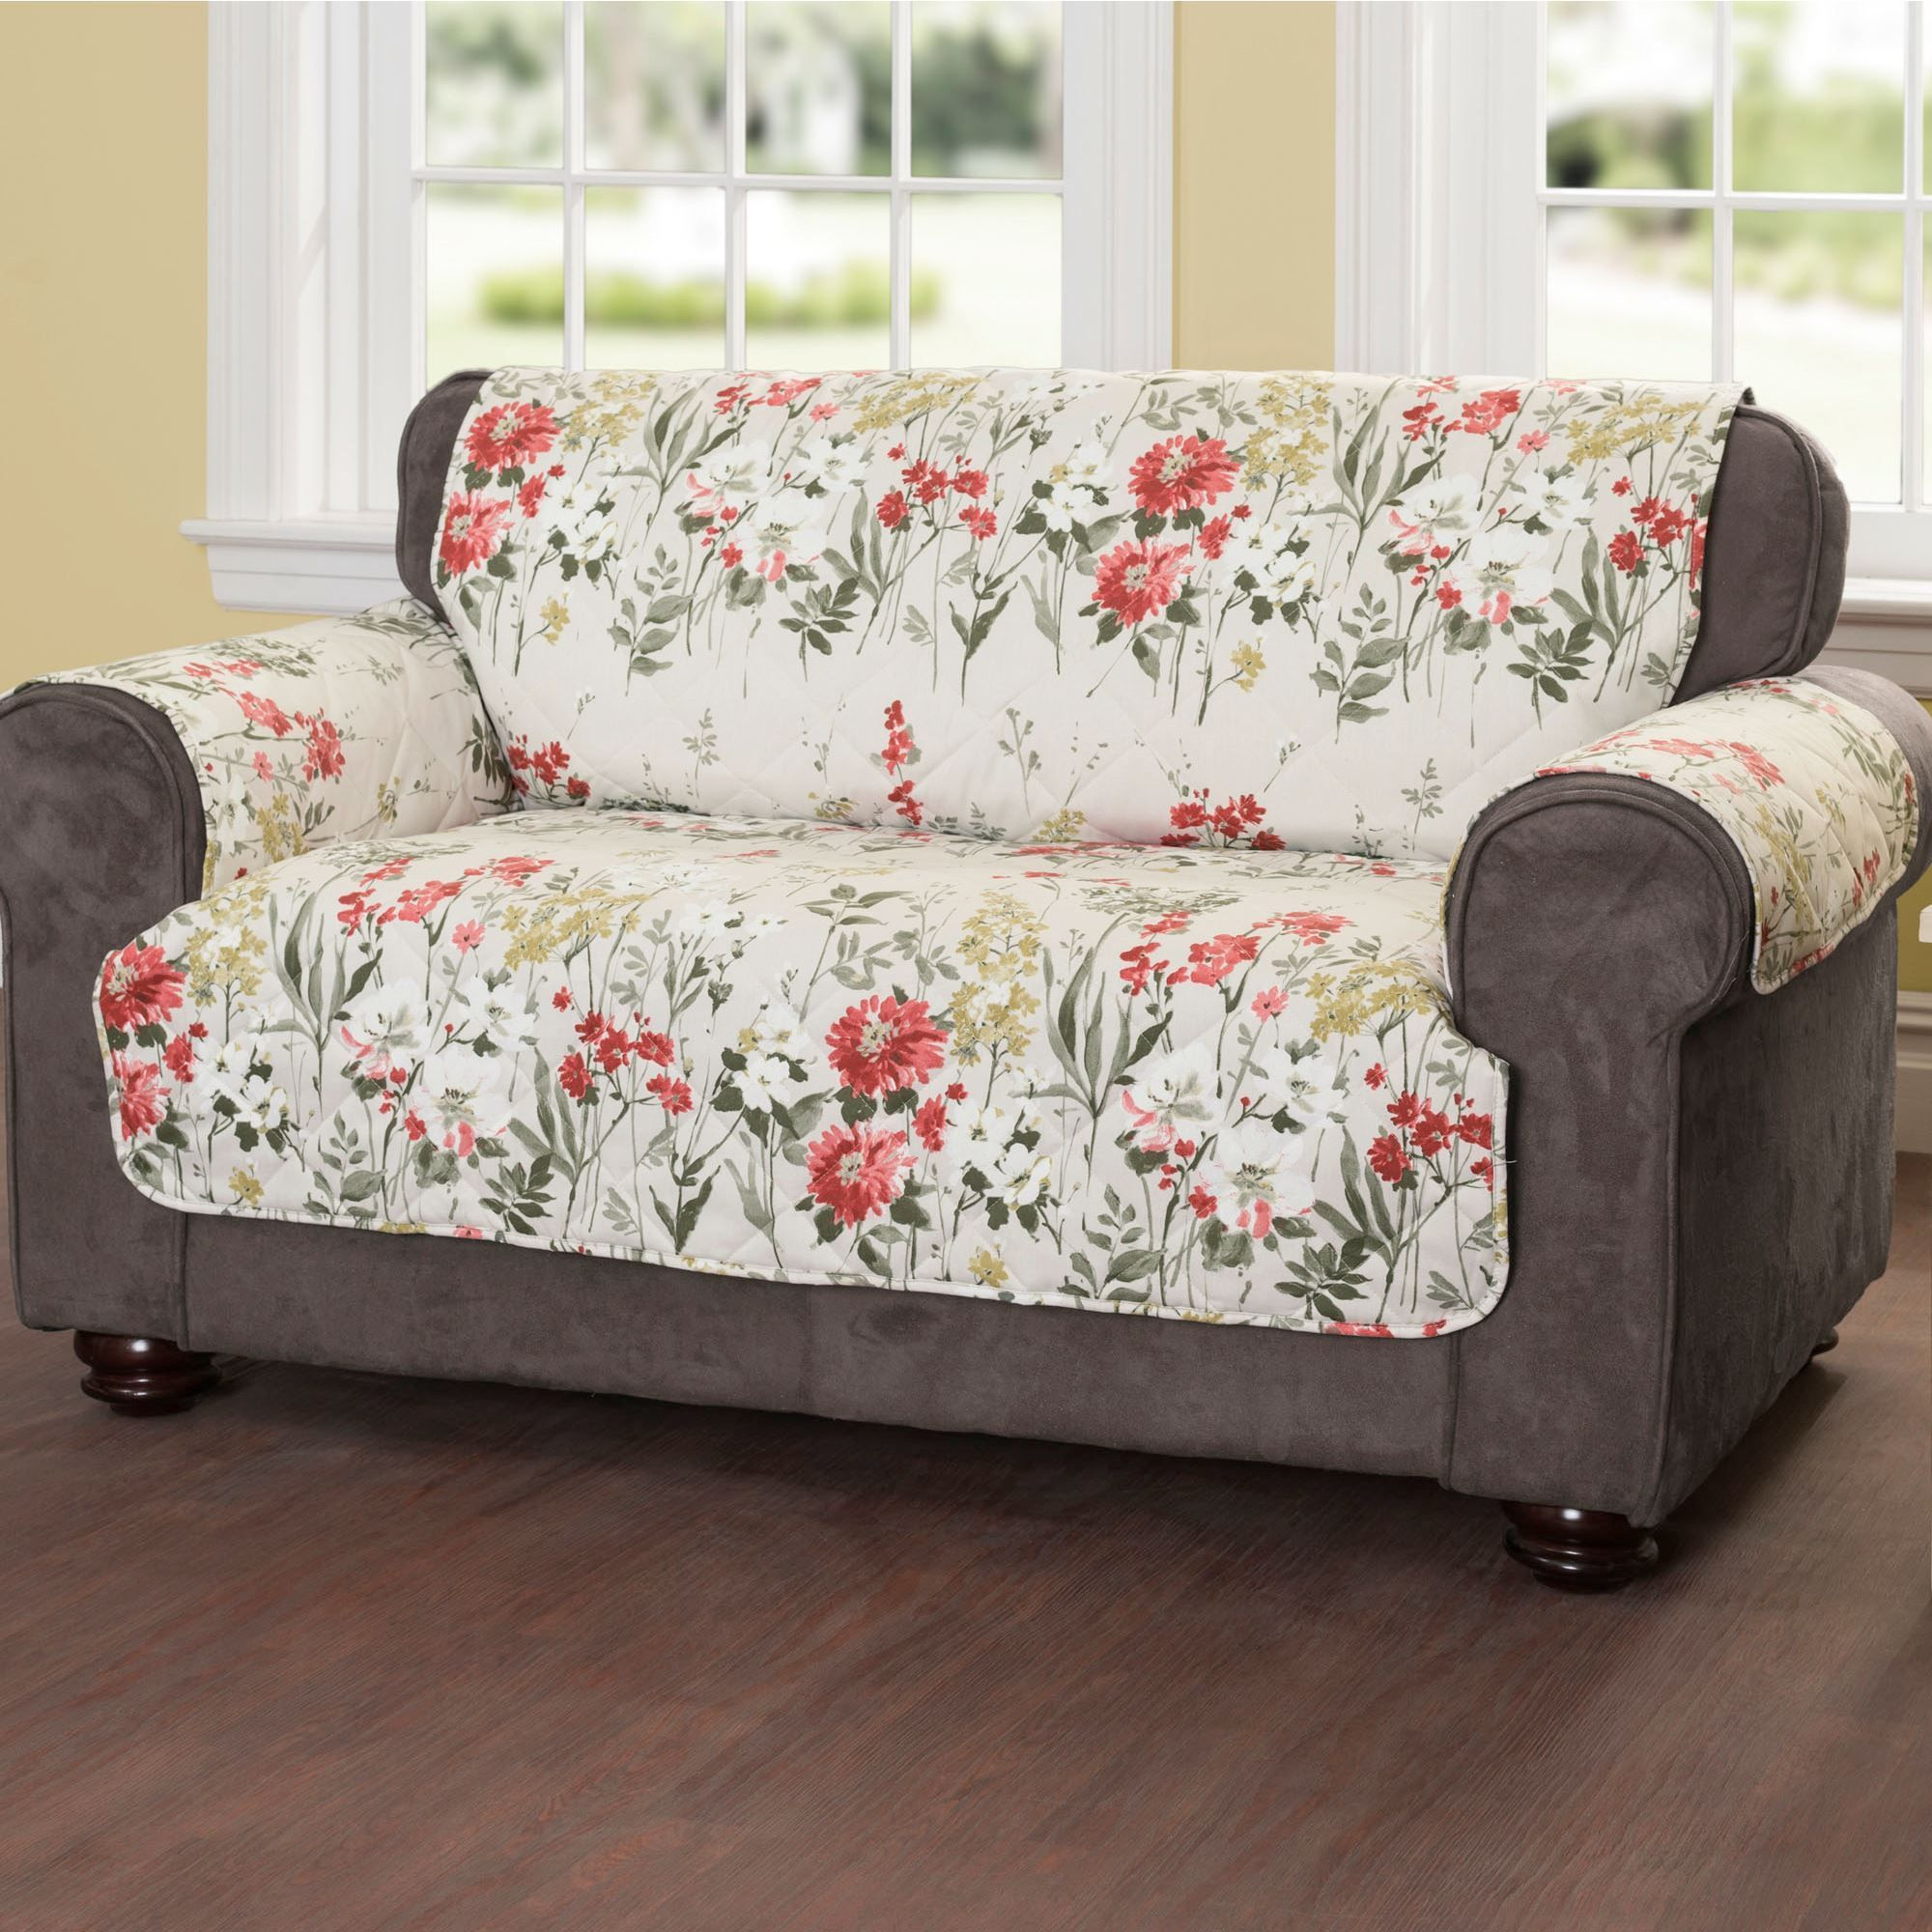 Sofa Set Cover Stitching Floral Meadow Quilted Furniture Protectors Living Room